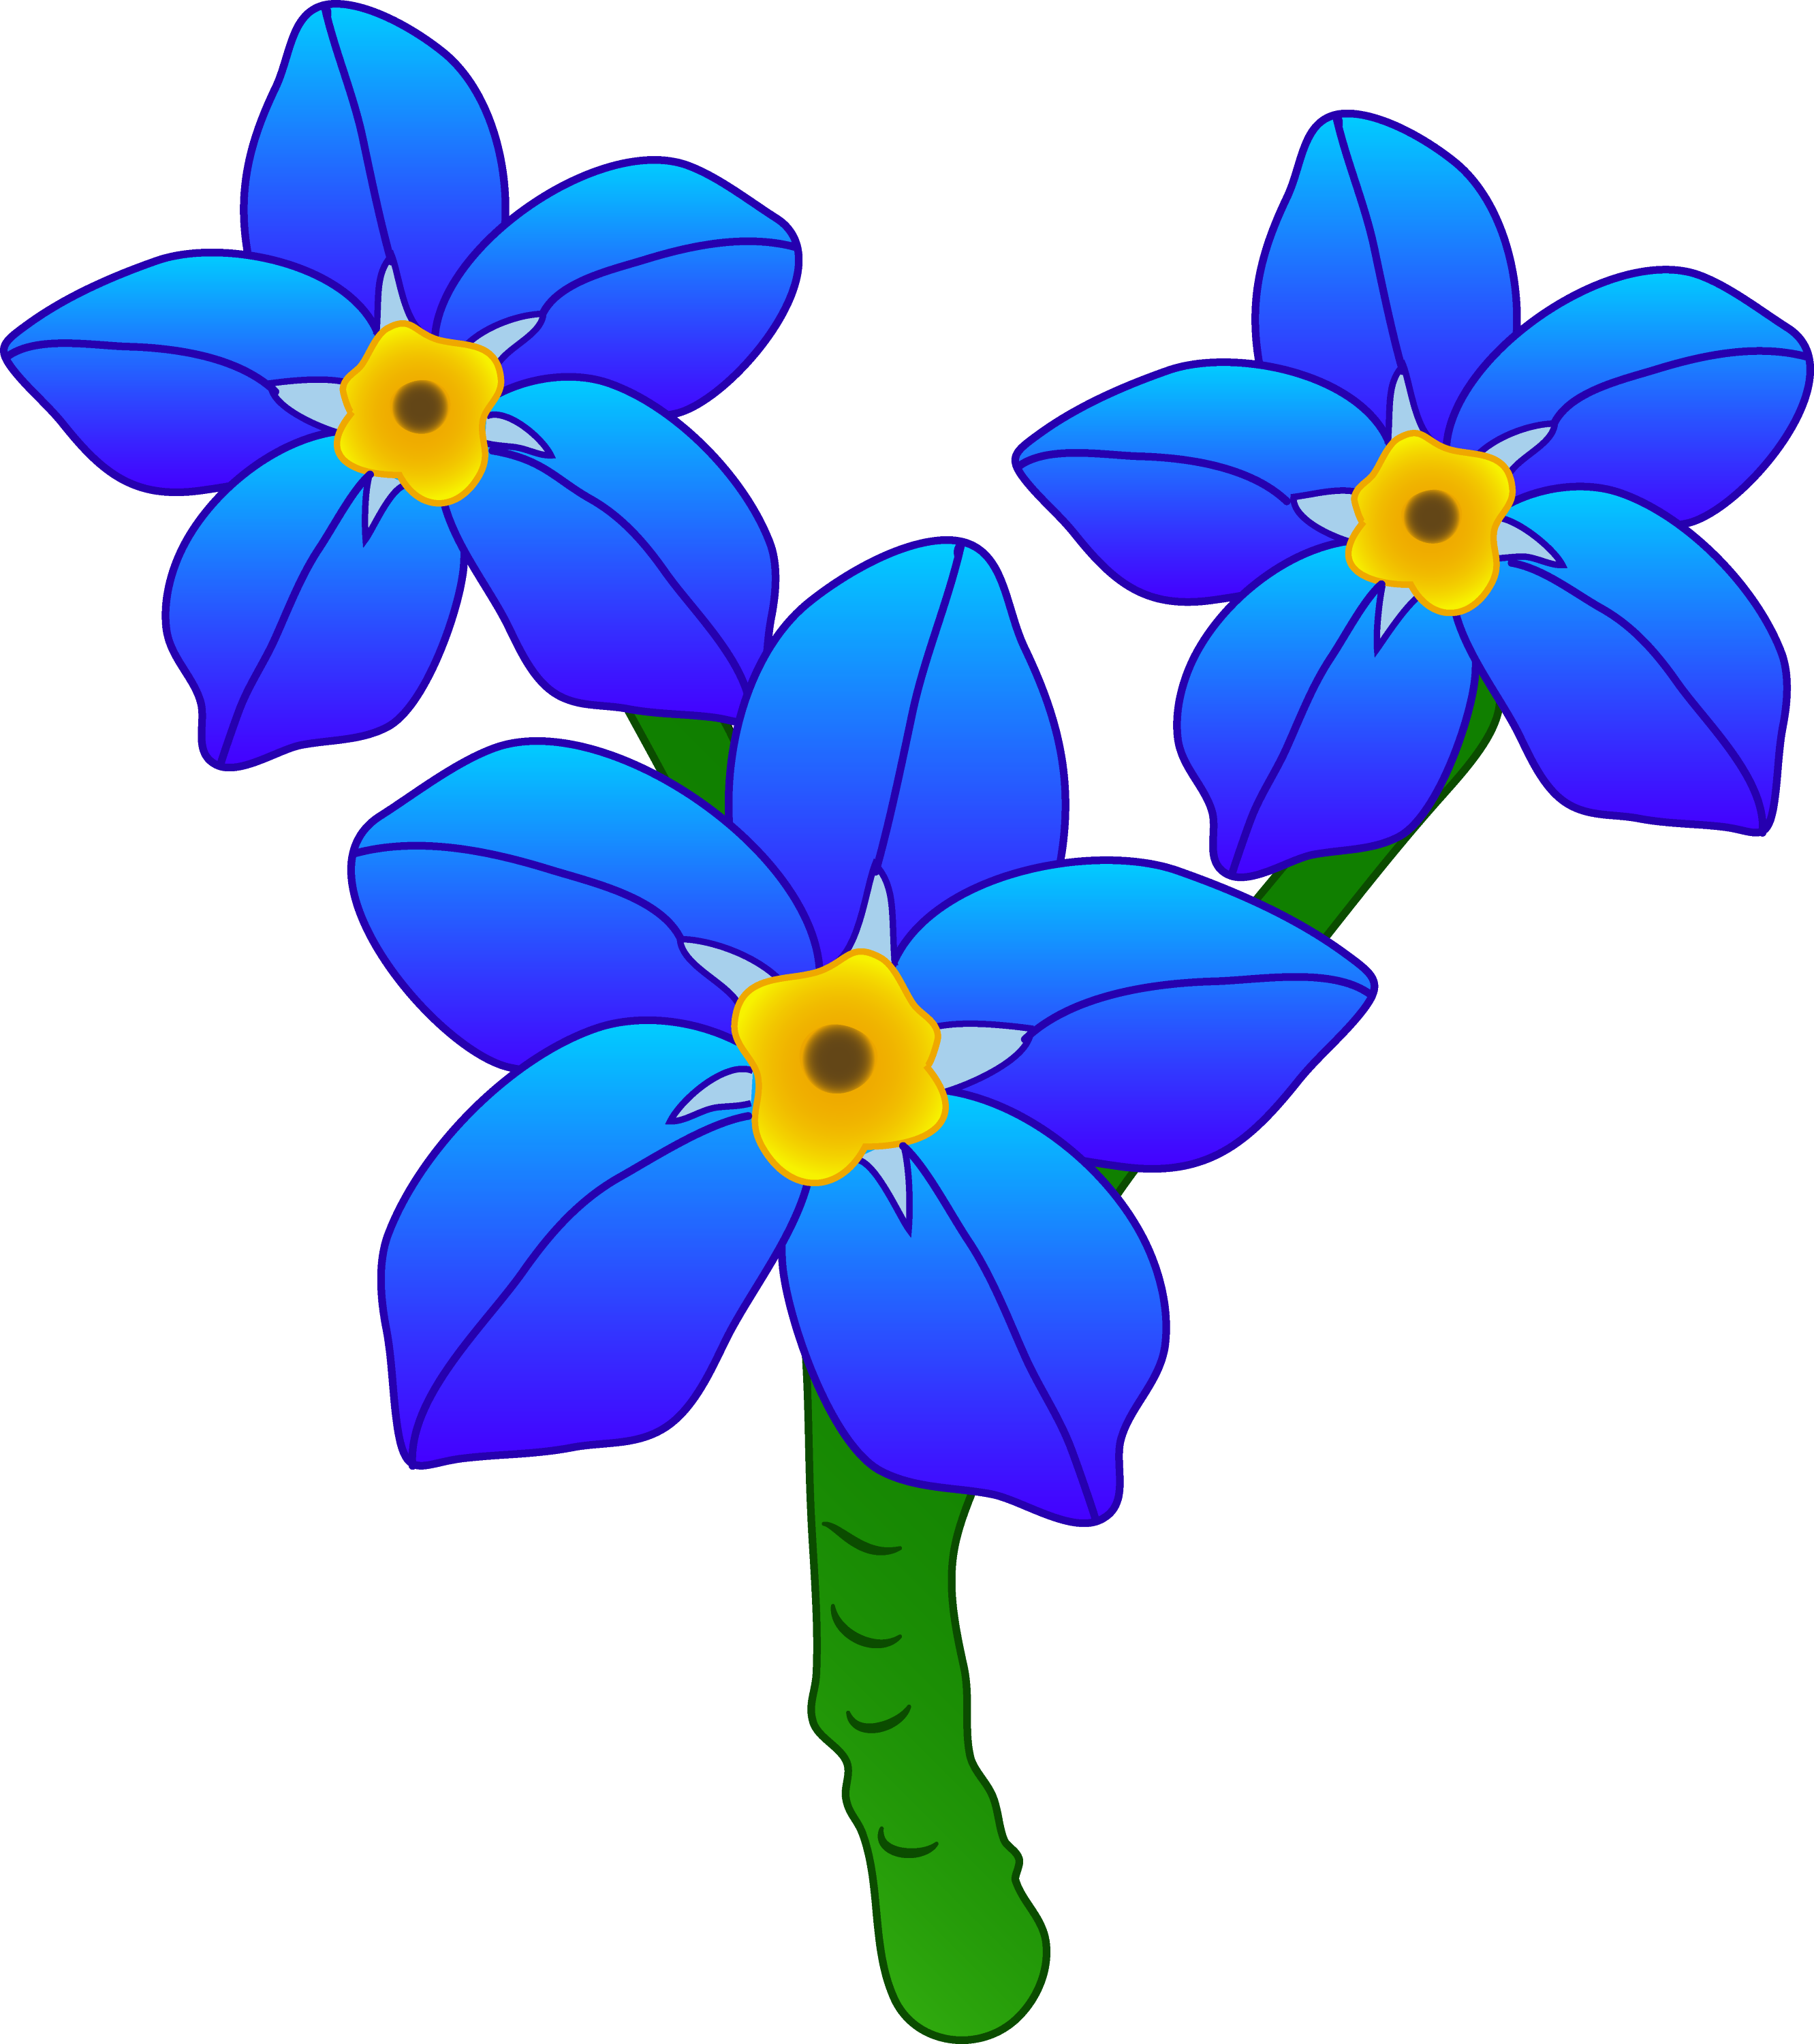 Three Forget Me Not Flowers - Free Clip Art